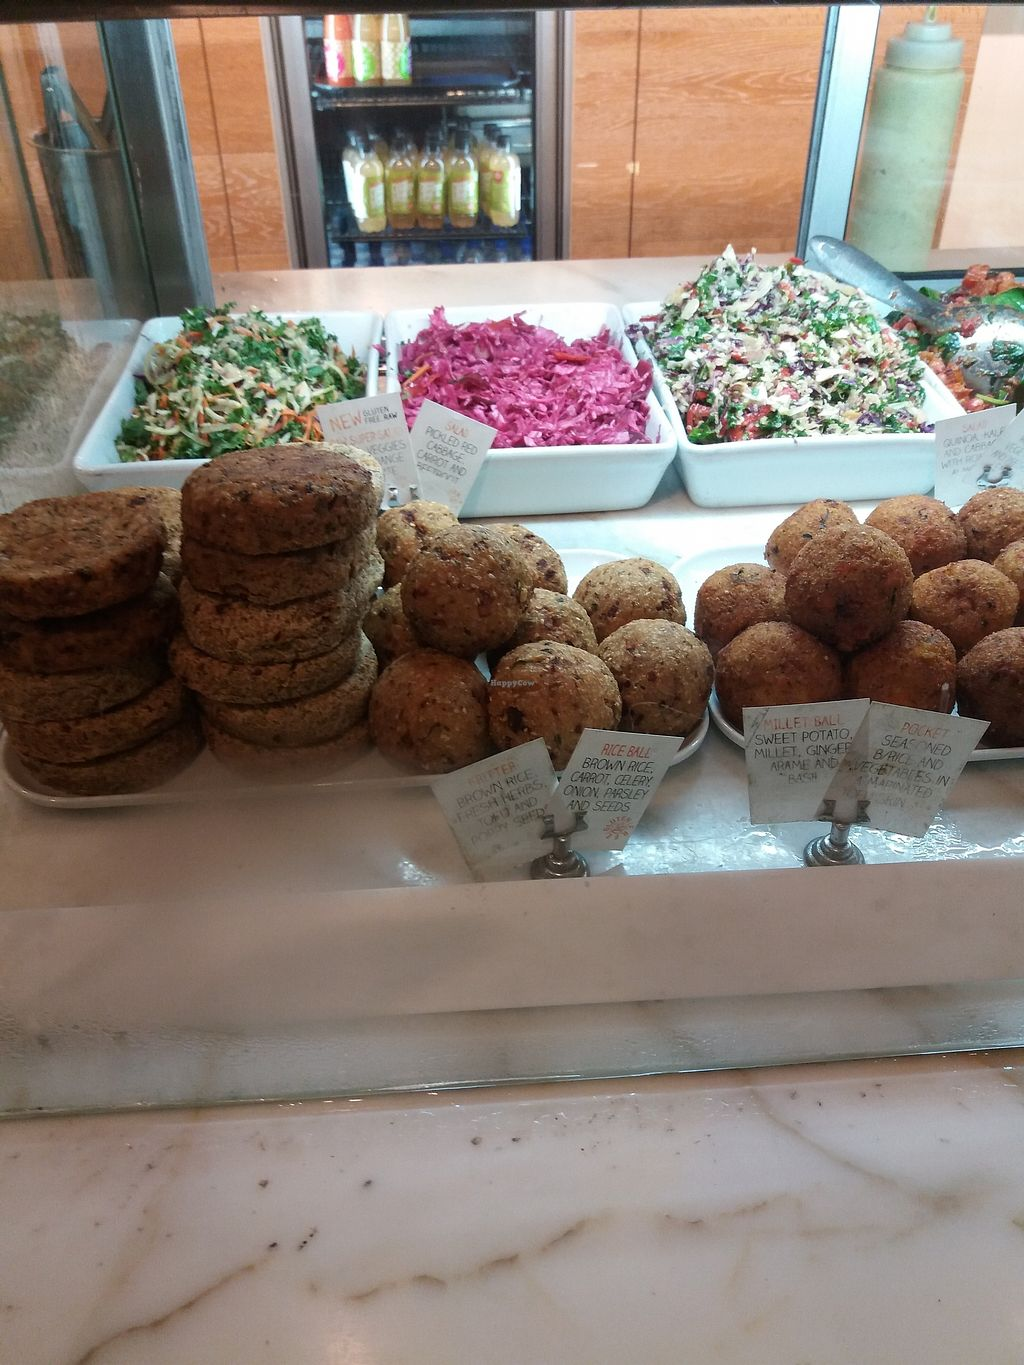 """Photo of Iku Wholefoods Kitchen - Westfield Plaza  by <a href=""""/members/profile/veganvirtues"""">veganvirtues</a> <br/>Choc full of goodies <br/> March 12, 2018  - <a href='/contact/abuse/image/26685/369534'>Report</a>"""